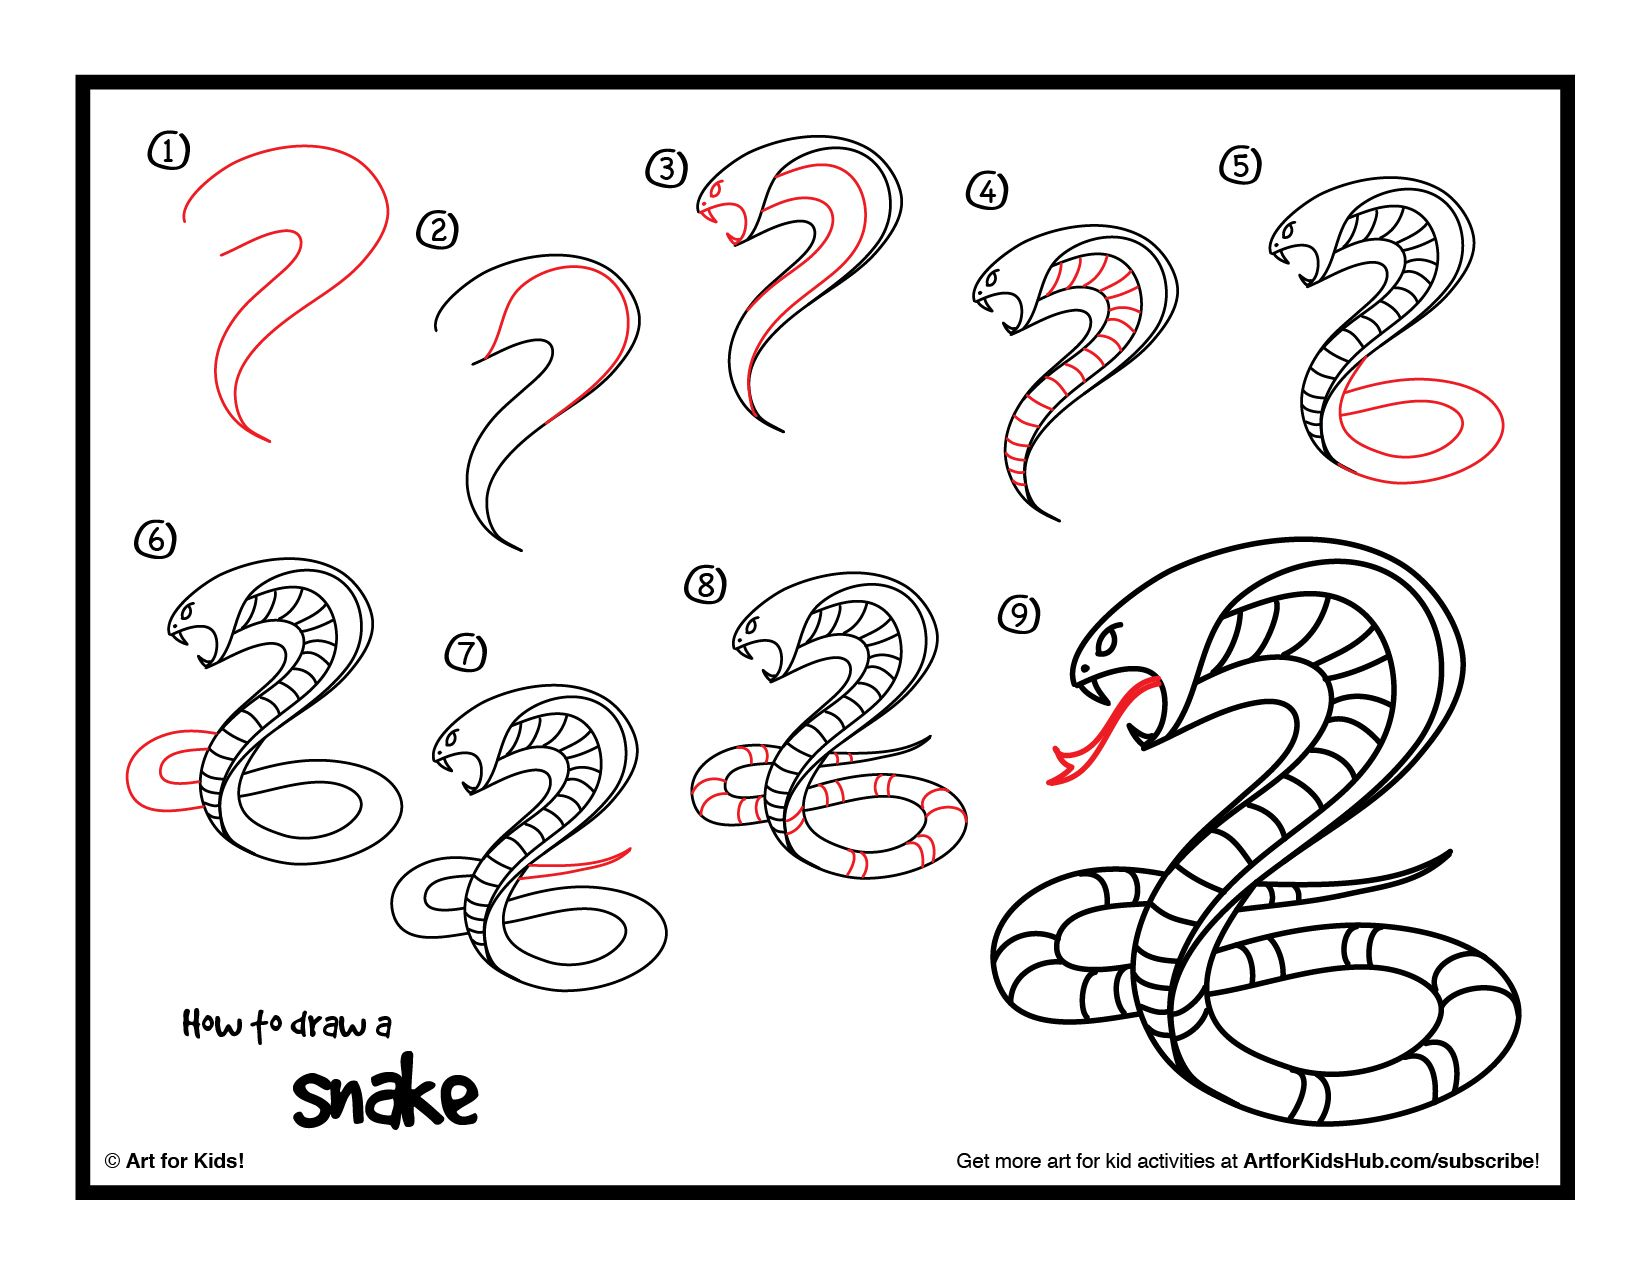 How To Draw A Snake - Art For Kids Hub - | Kid, How to draw and A ...